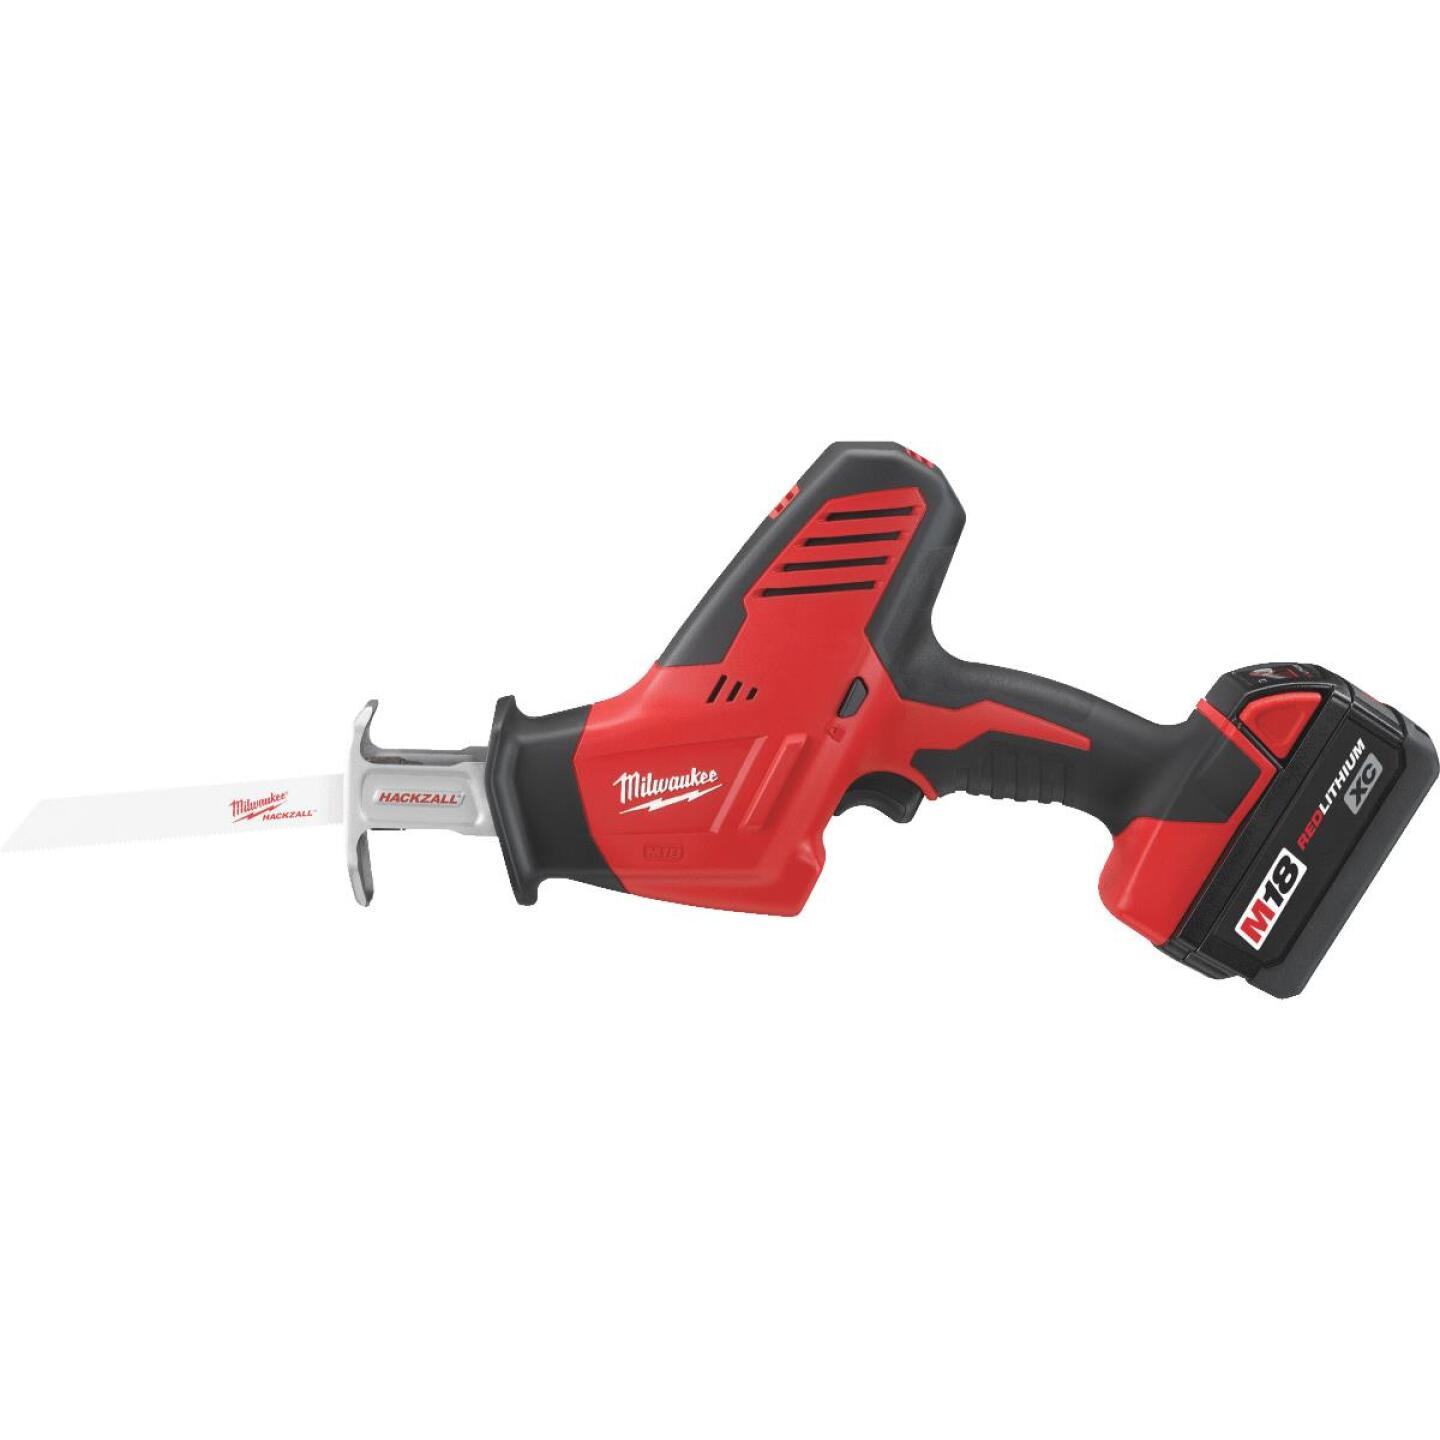 Milwaukee Hackzall M18 18-Volt Lithium-Ion Cordless Reciprocating Saw Kit Image 1